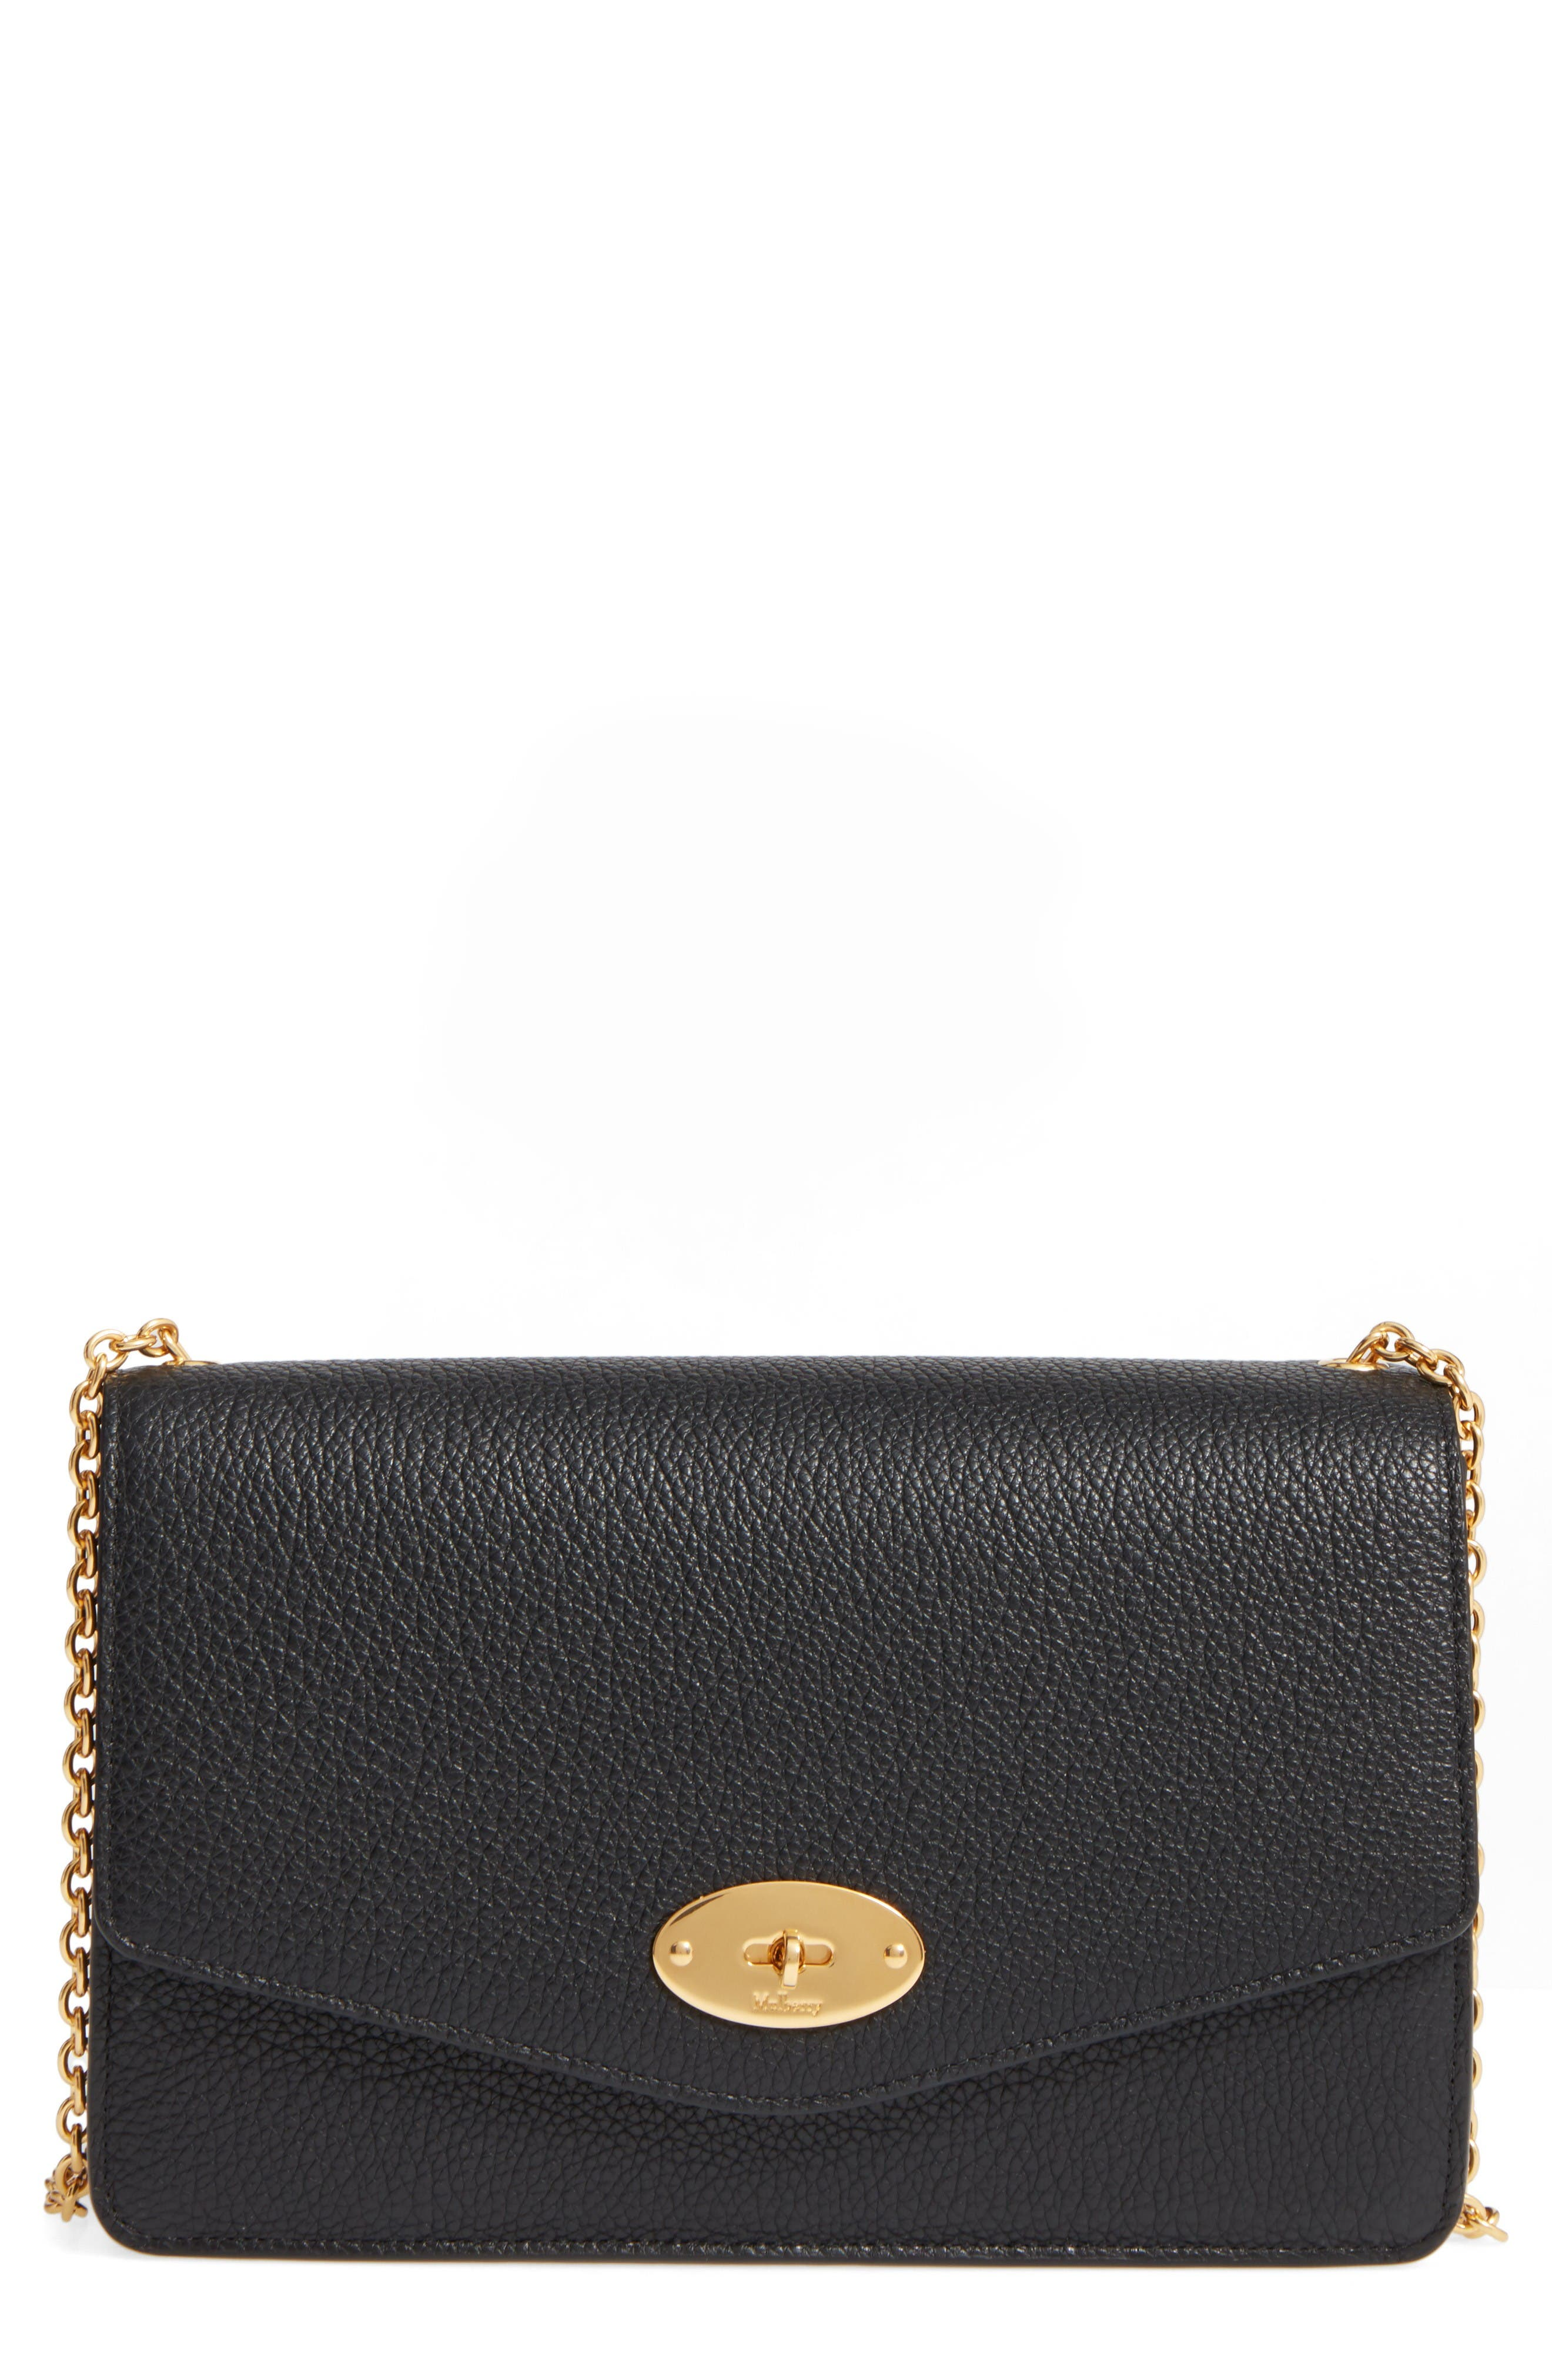 Large Postmans Lock Calfskin Leather Crossbody Clutch,                         Main,                         color, Black